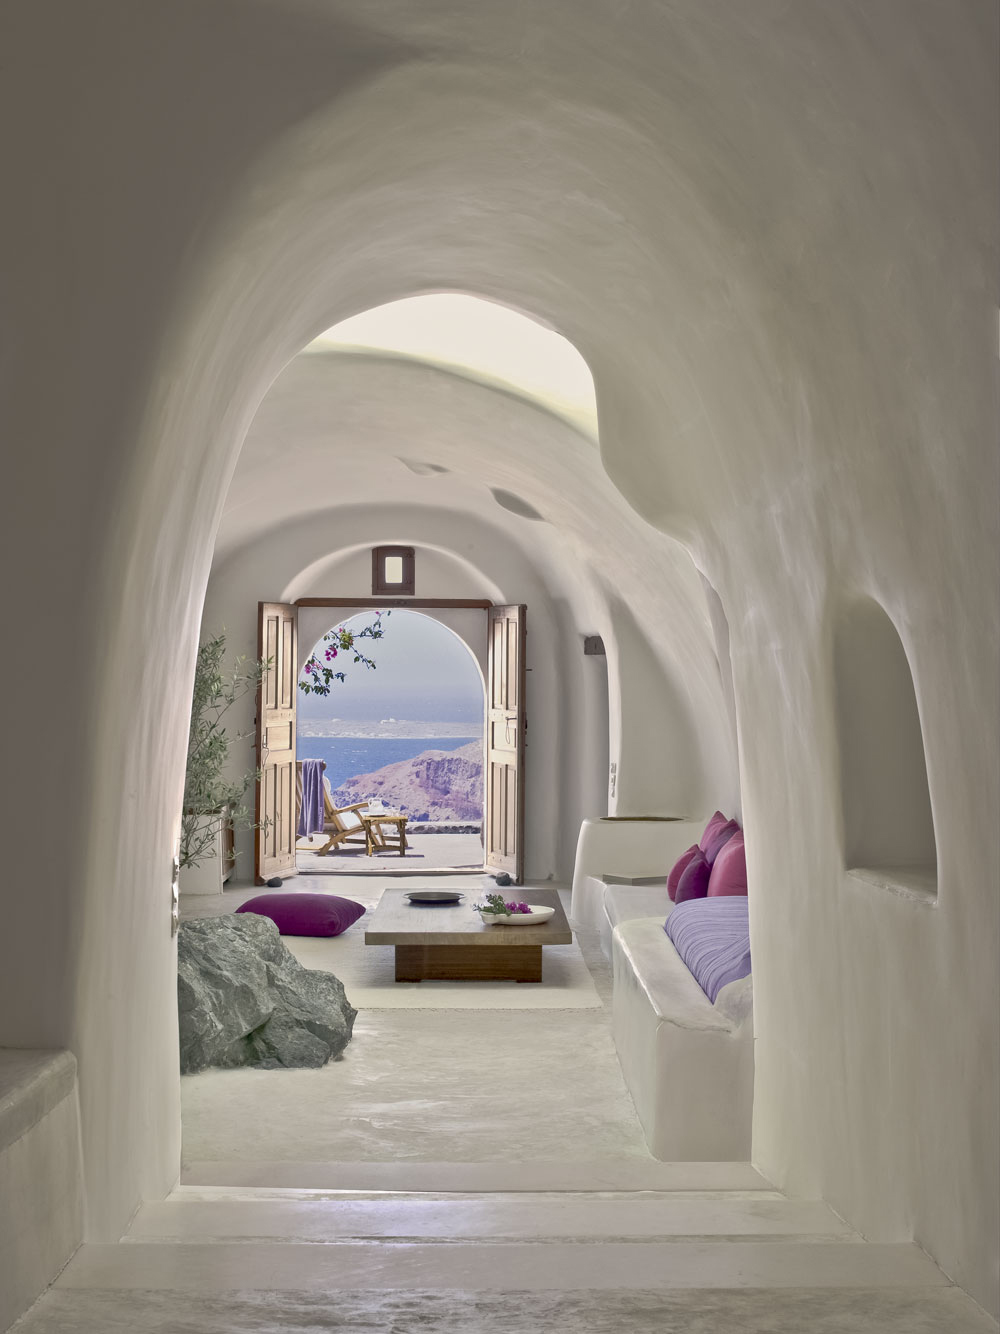 Perivolas Hotel  in Santorini, Greece